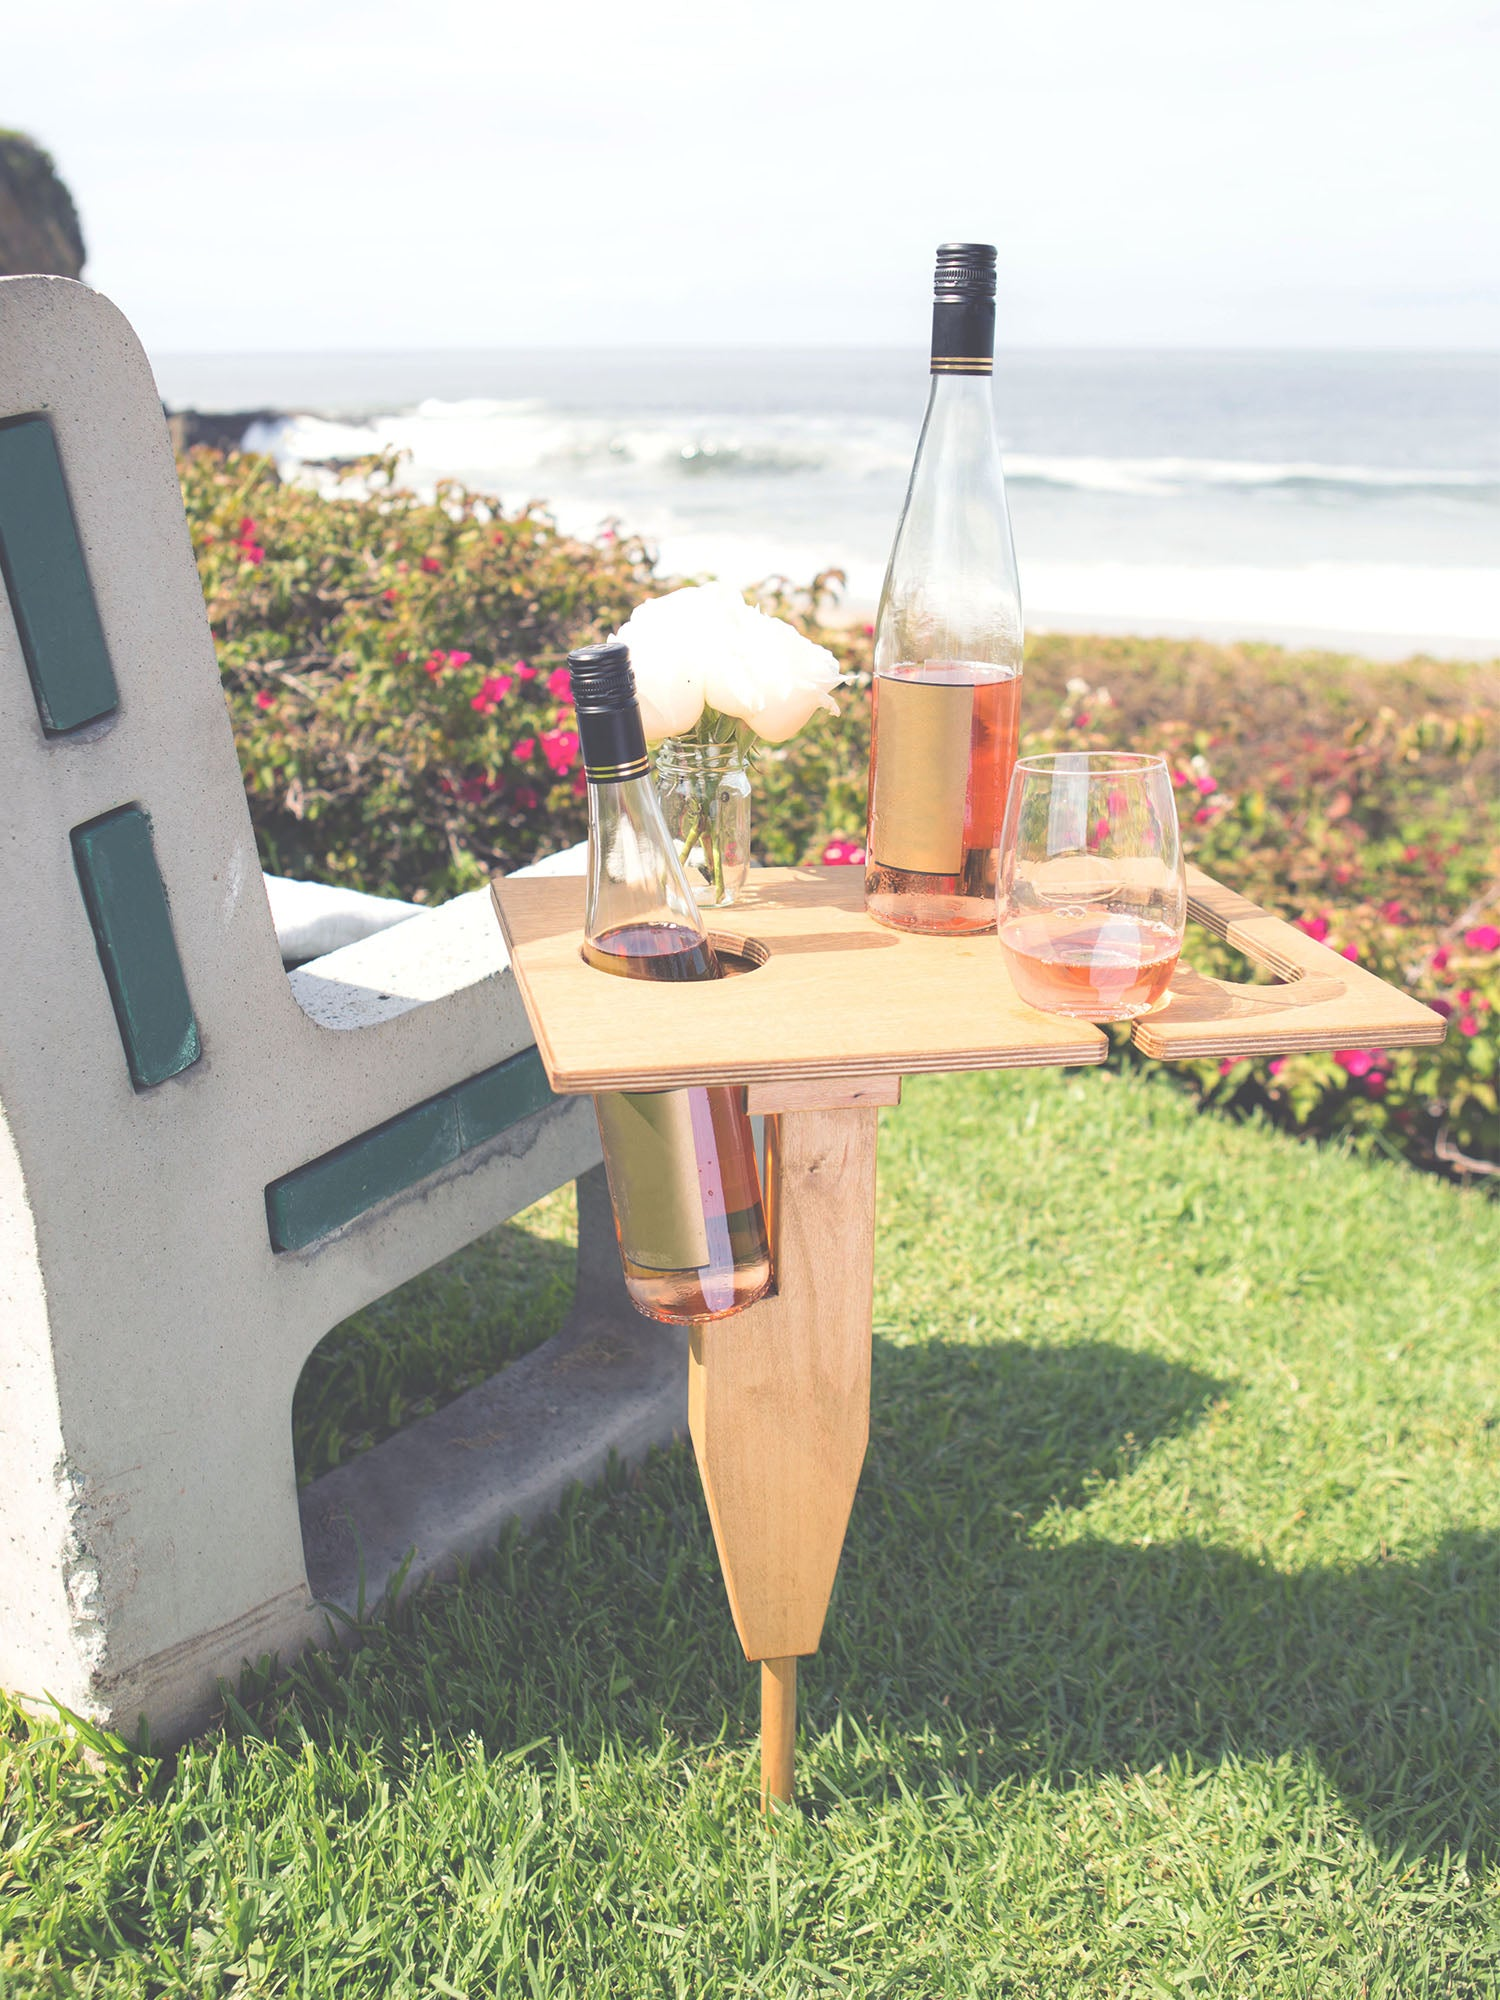 Murray portable beach table in naturally sunkissed color unfolded standing up in grass at park with refreshment drinks